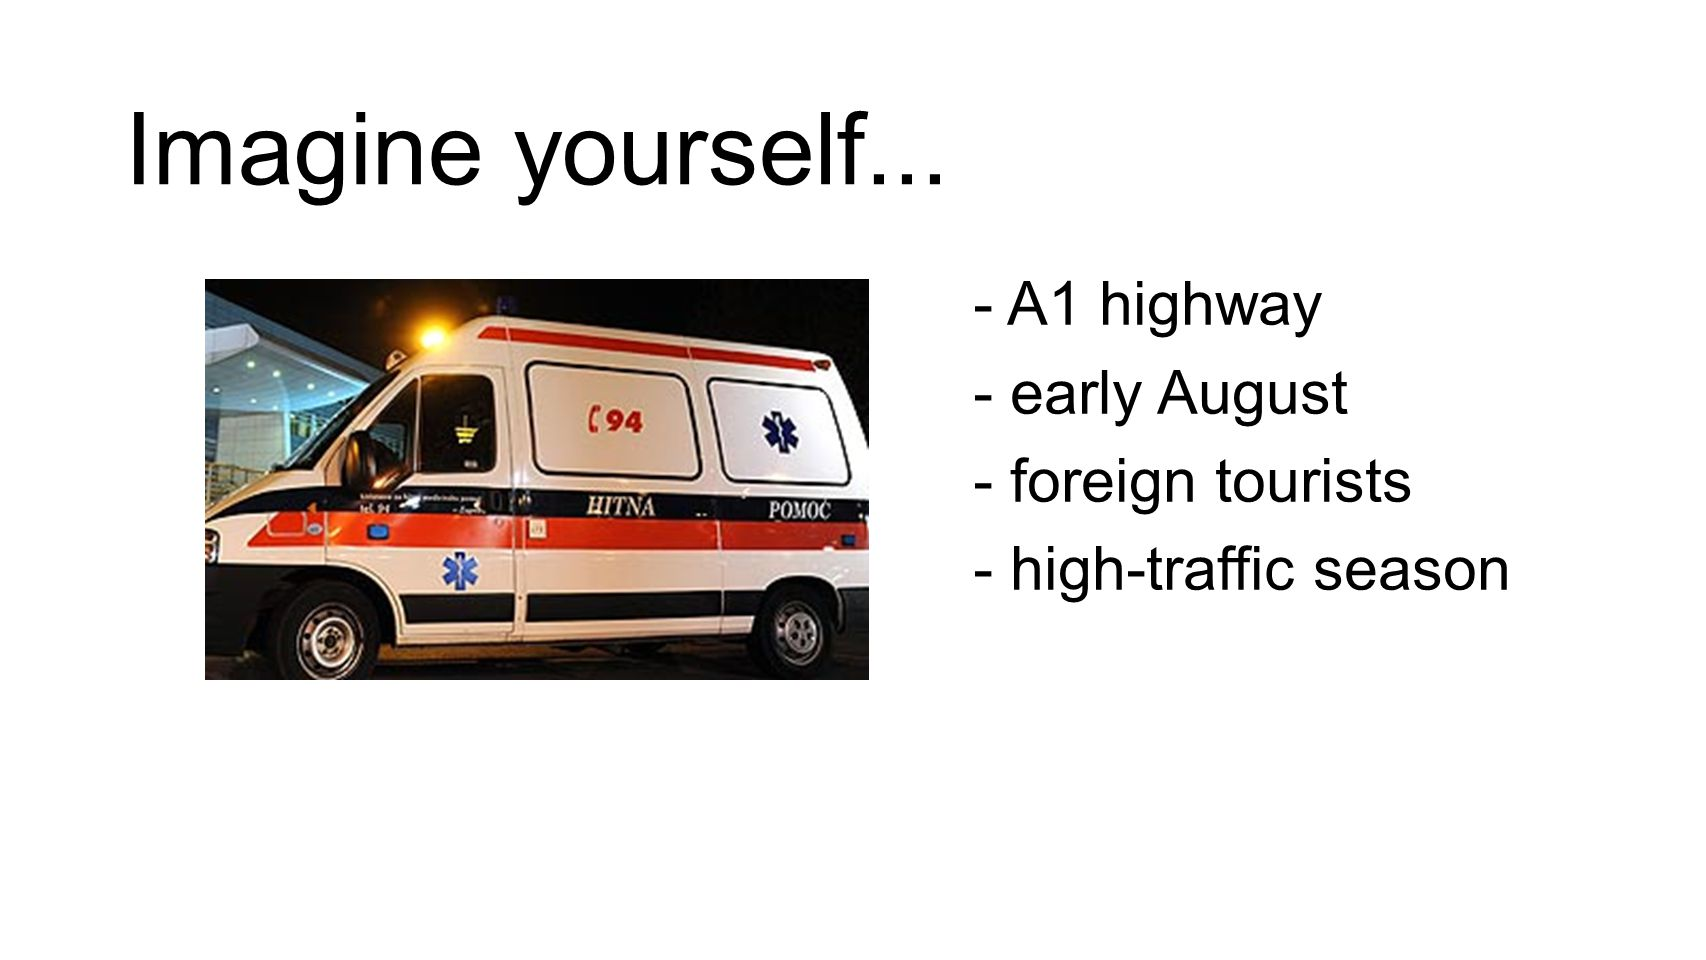 Imagine yourself... - A1 highway - early August - foreign tourists - high-traffic season